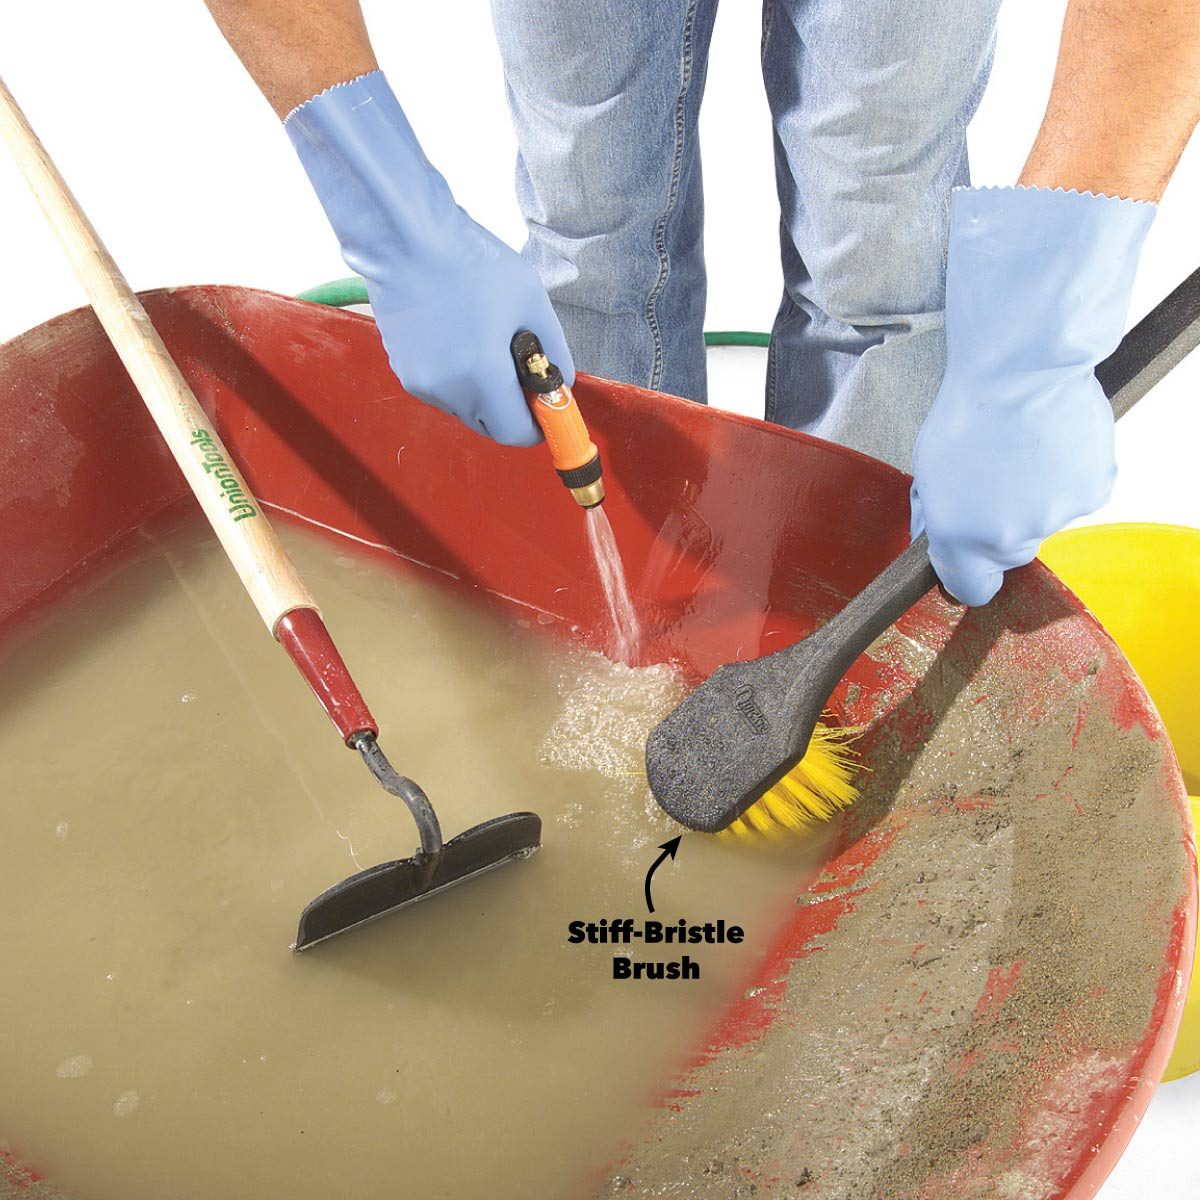 clean up concrete mixing tools